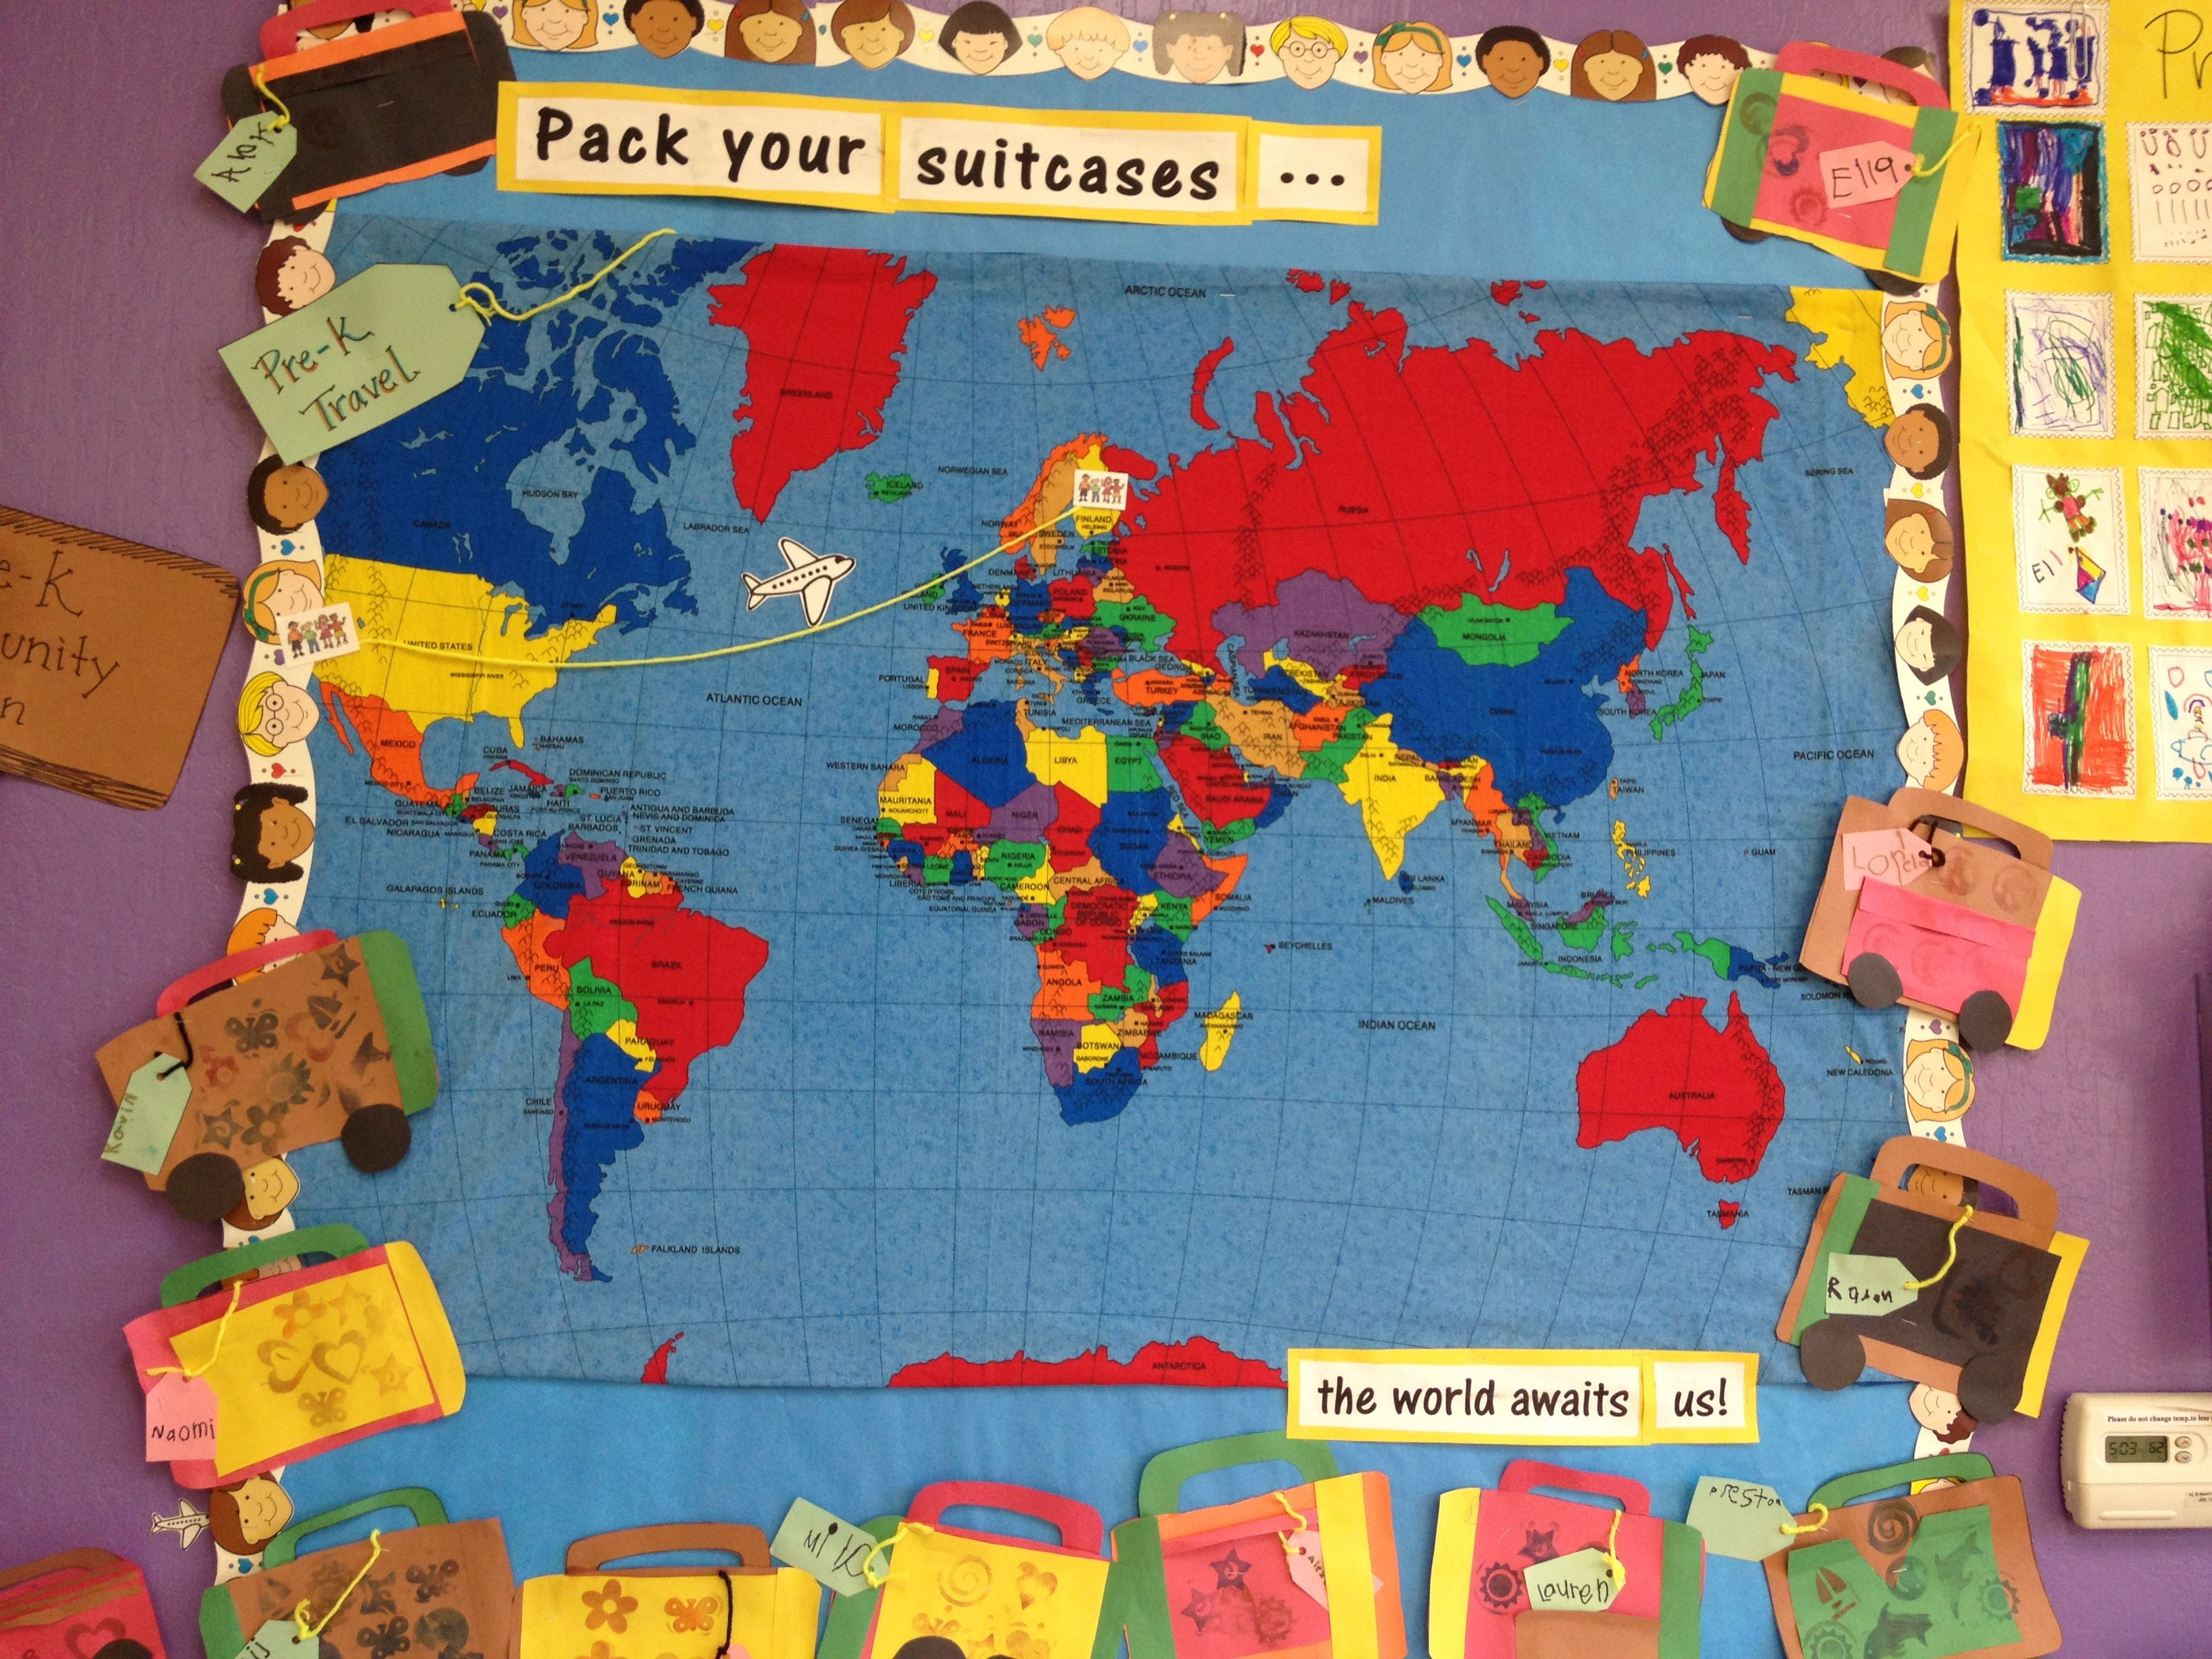 Learning About The World And Cultures Month Bulletin Board Pre K S Pretend Travel Around With Their Suitcases In Hand Map Tracker Of